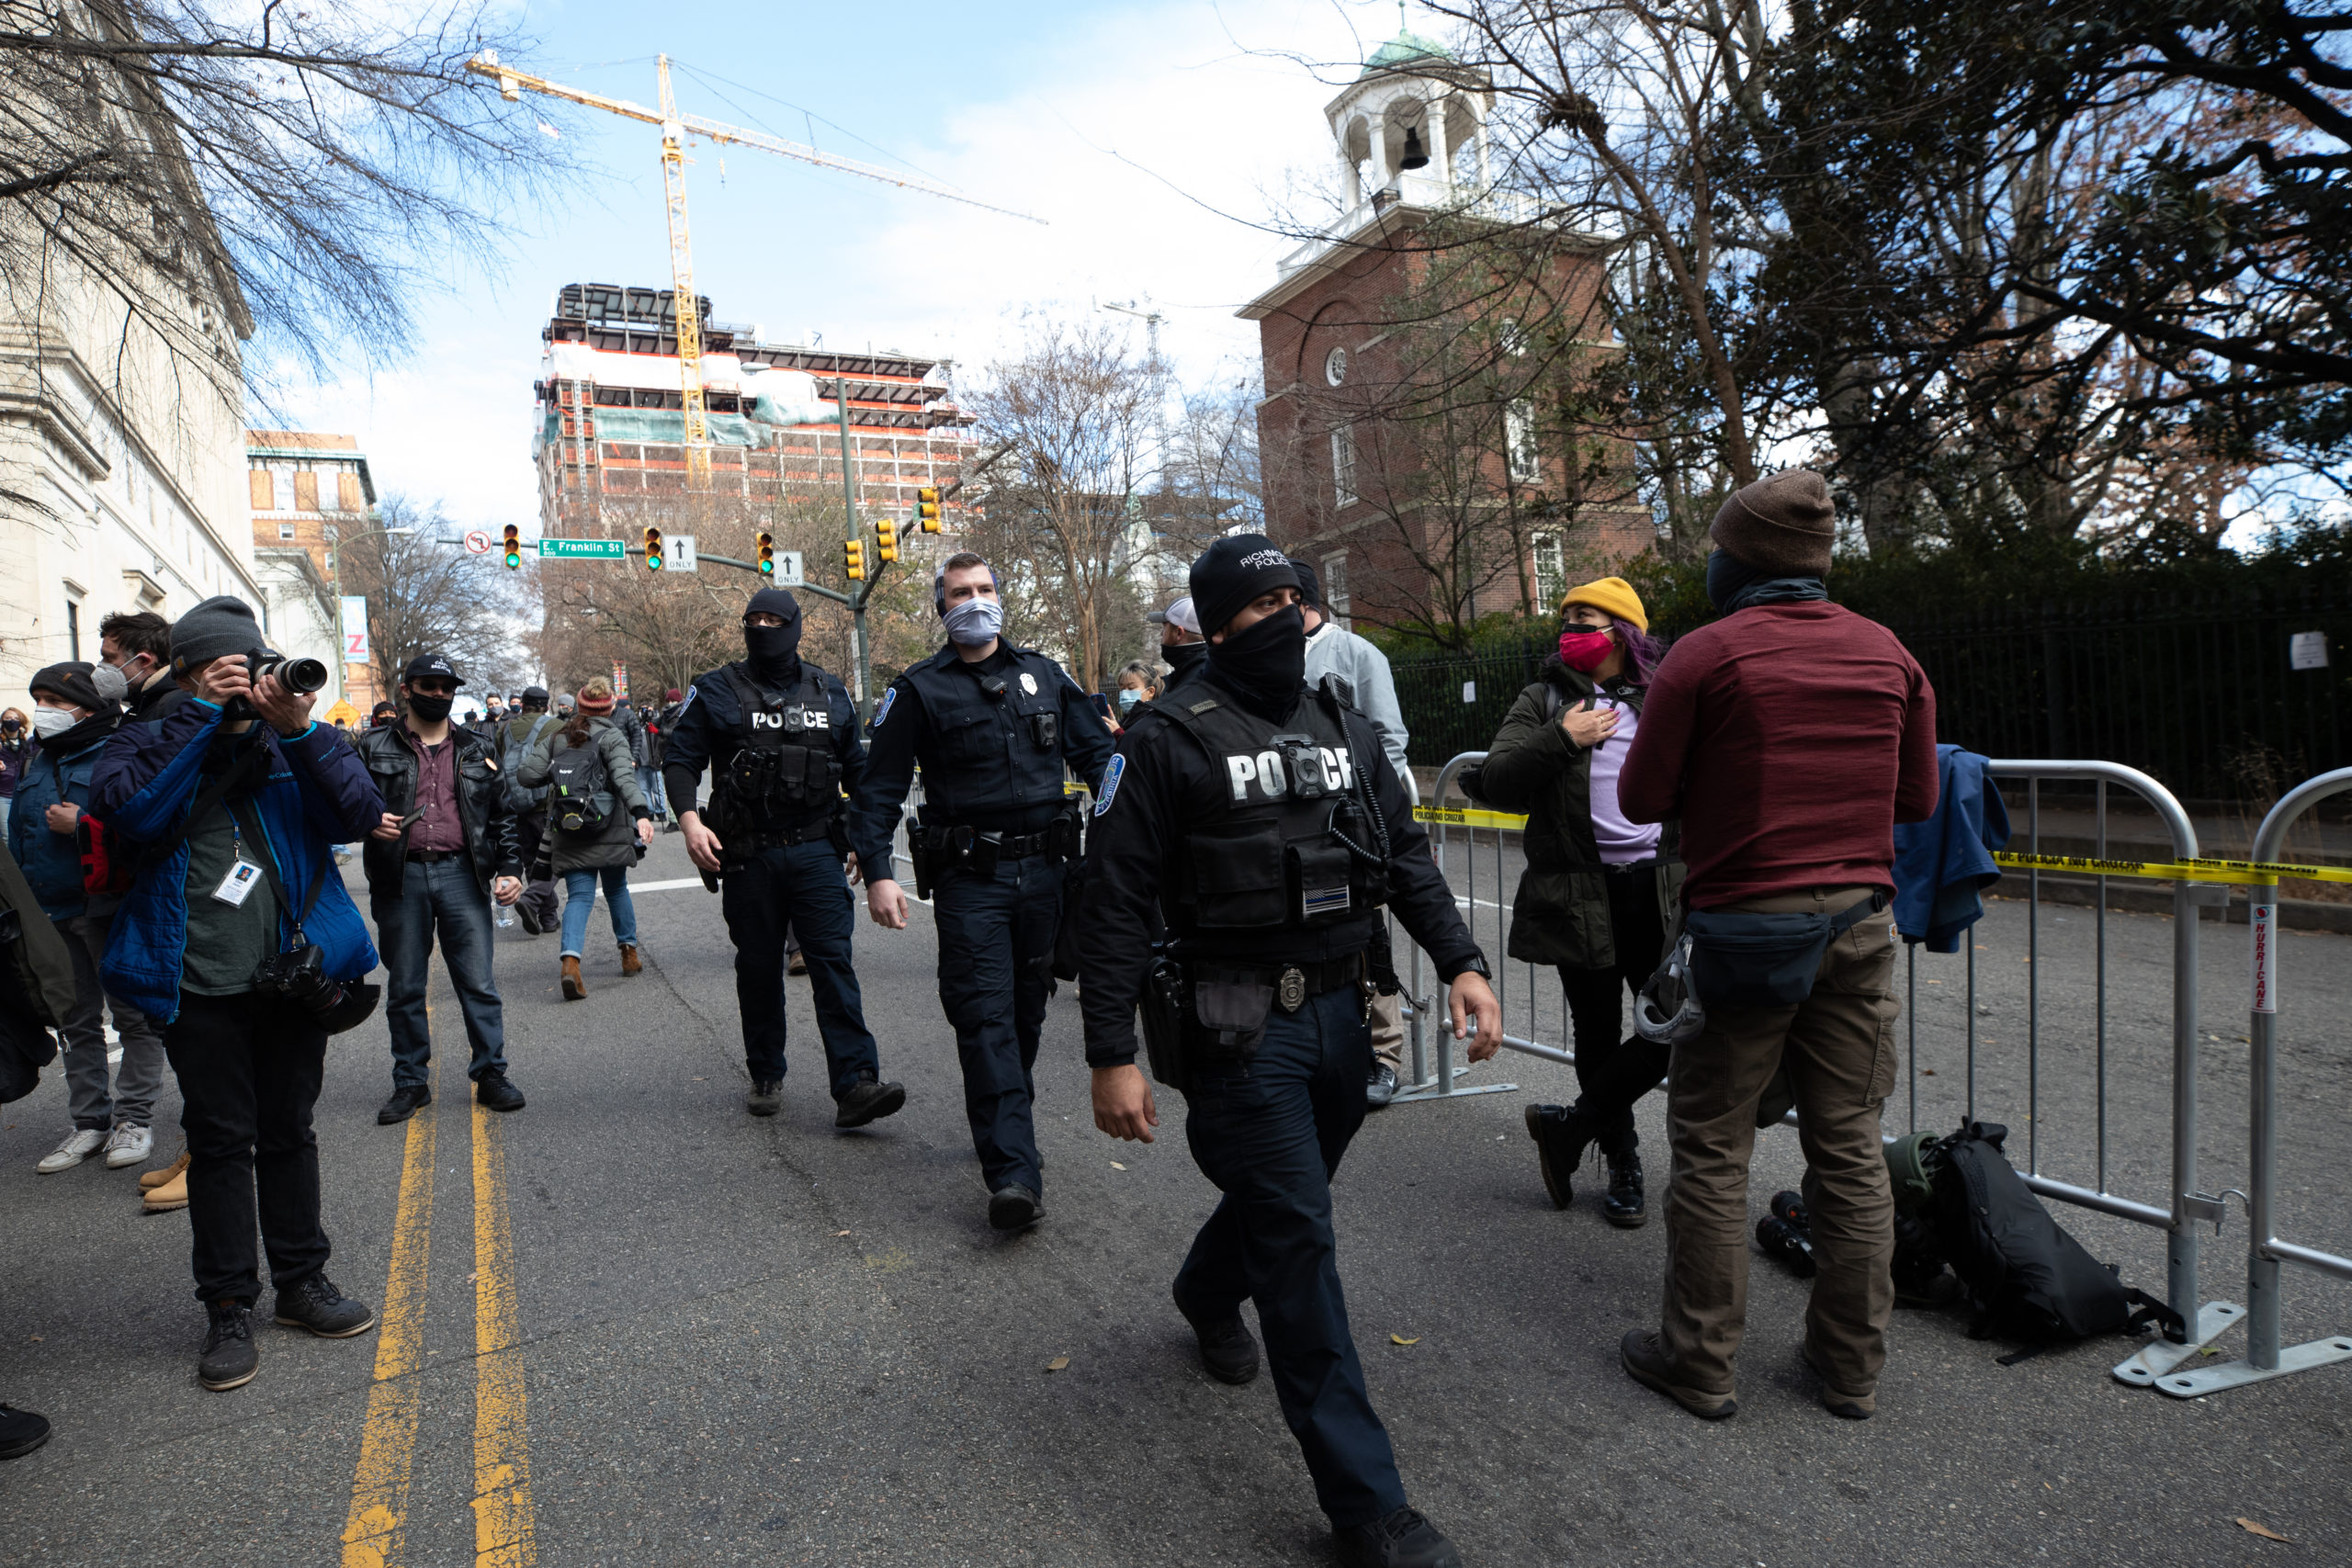 Police officers walk through a crowd of armed protesters during Lobby Day demonstrations in Richmond, Virginia on January 18, 2021. (Kaylee Greenlee - Daily Caller News Foundation)